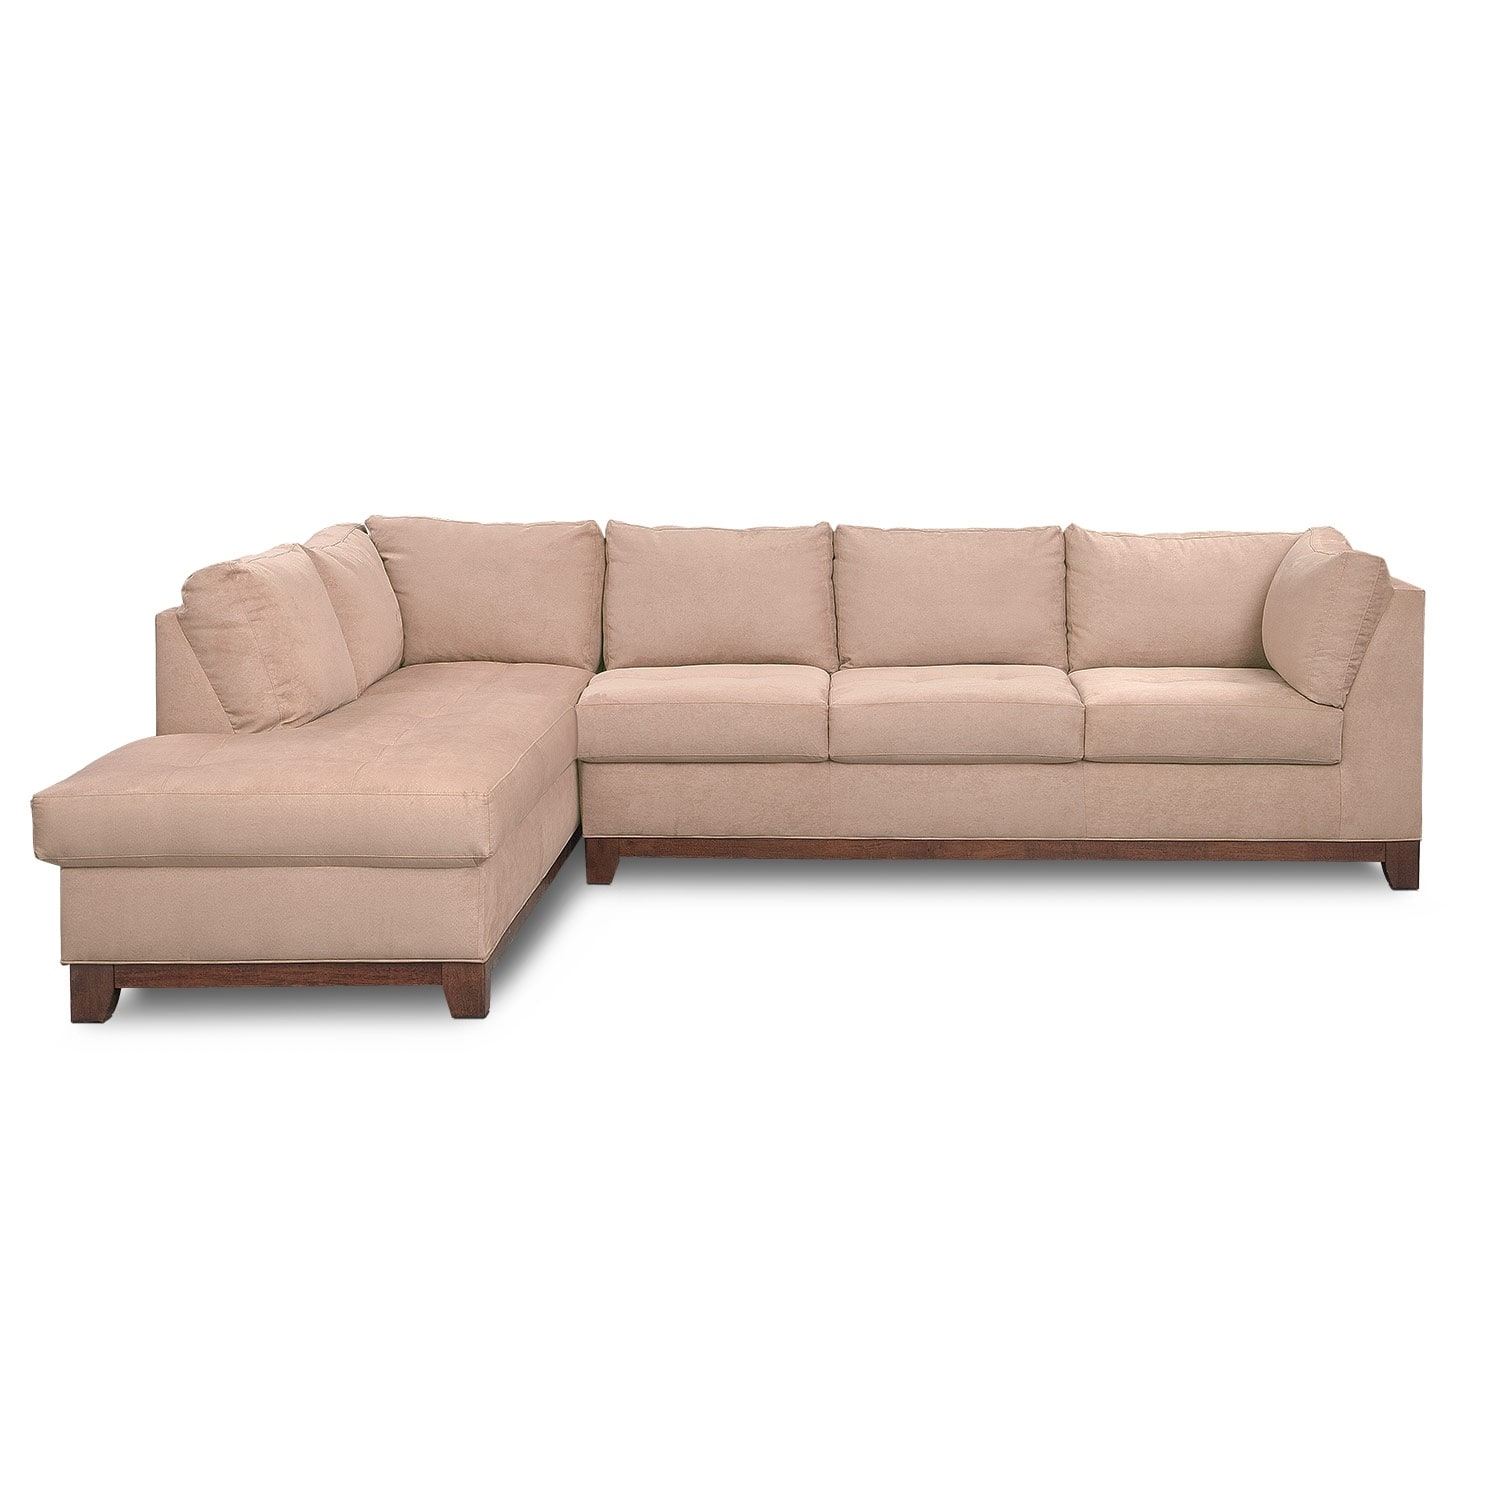 Soho 2 piece sectional with left facing chaise for Sectional sofa with chaise on sale